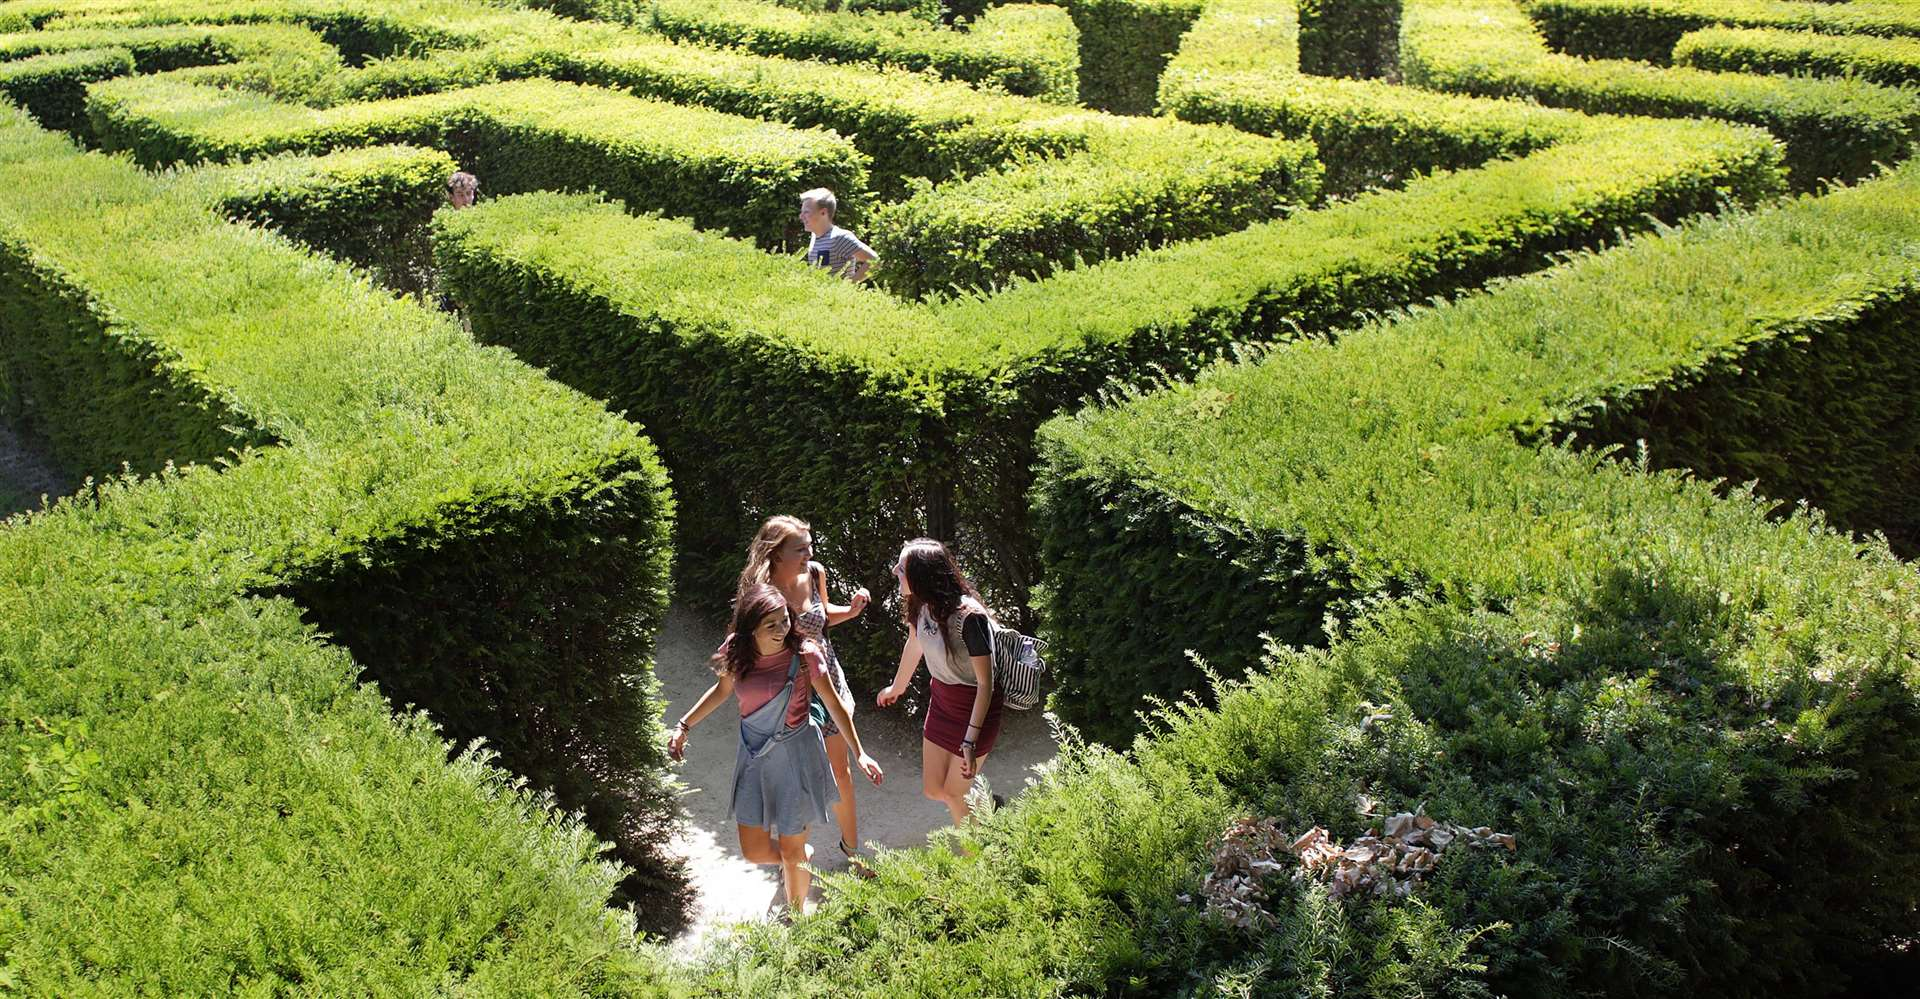 Leeds Castle Summertime: the maze